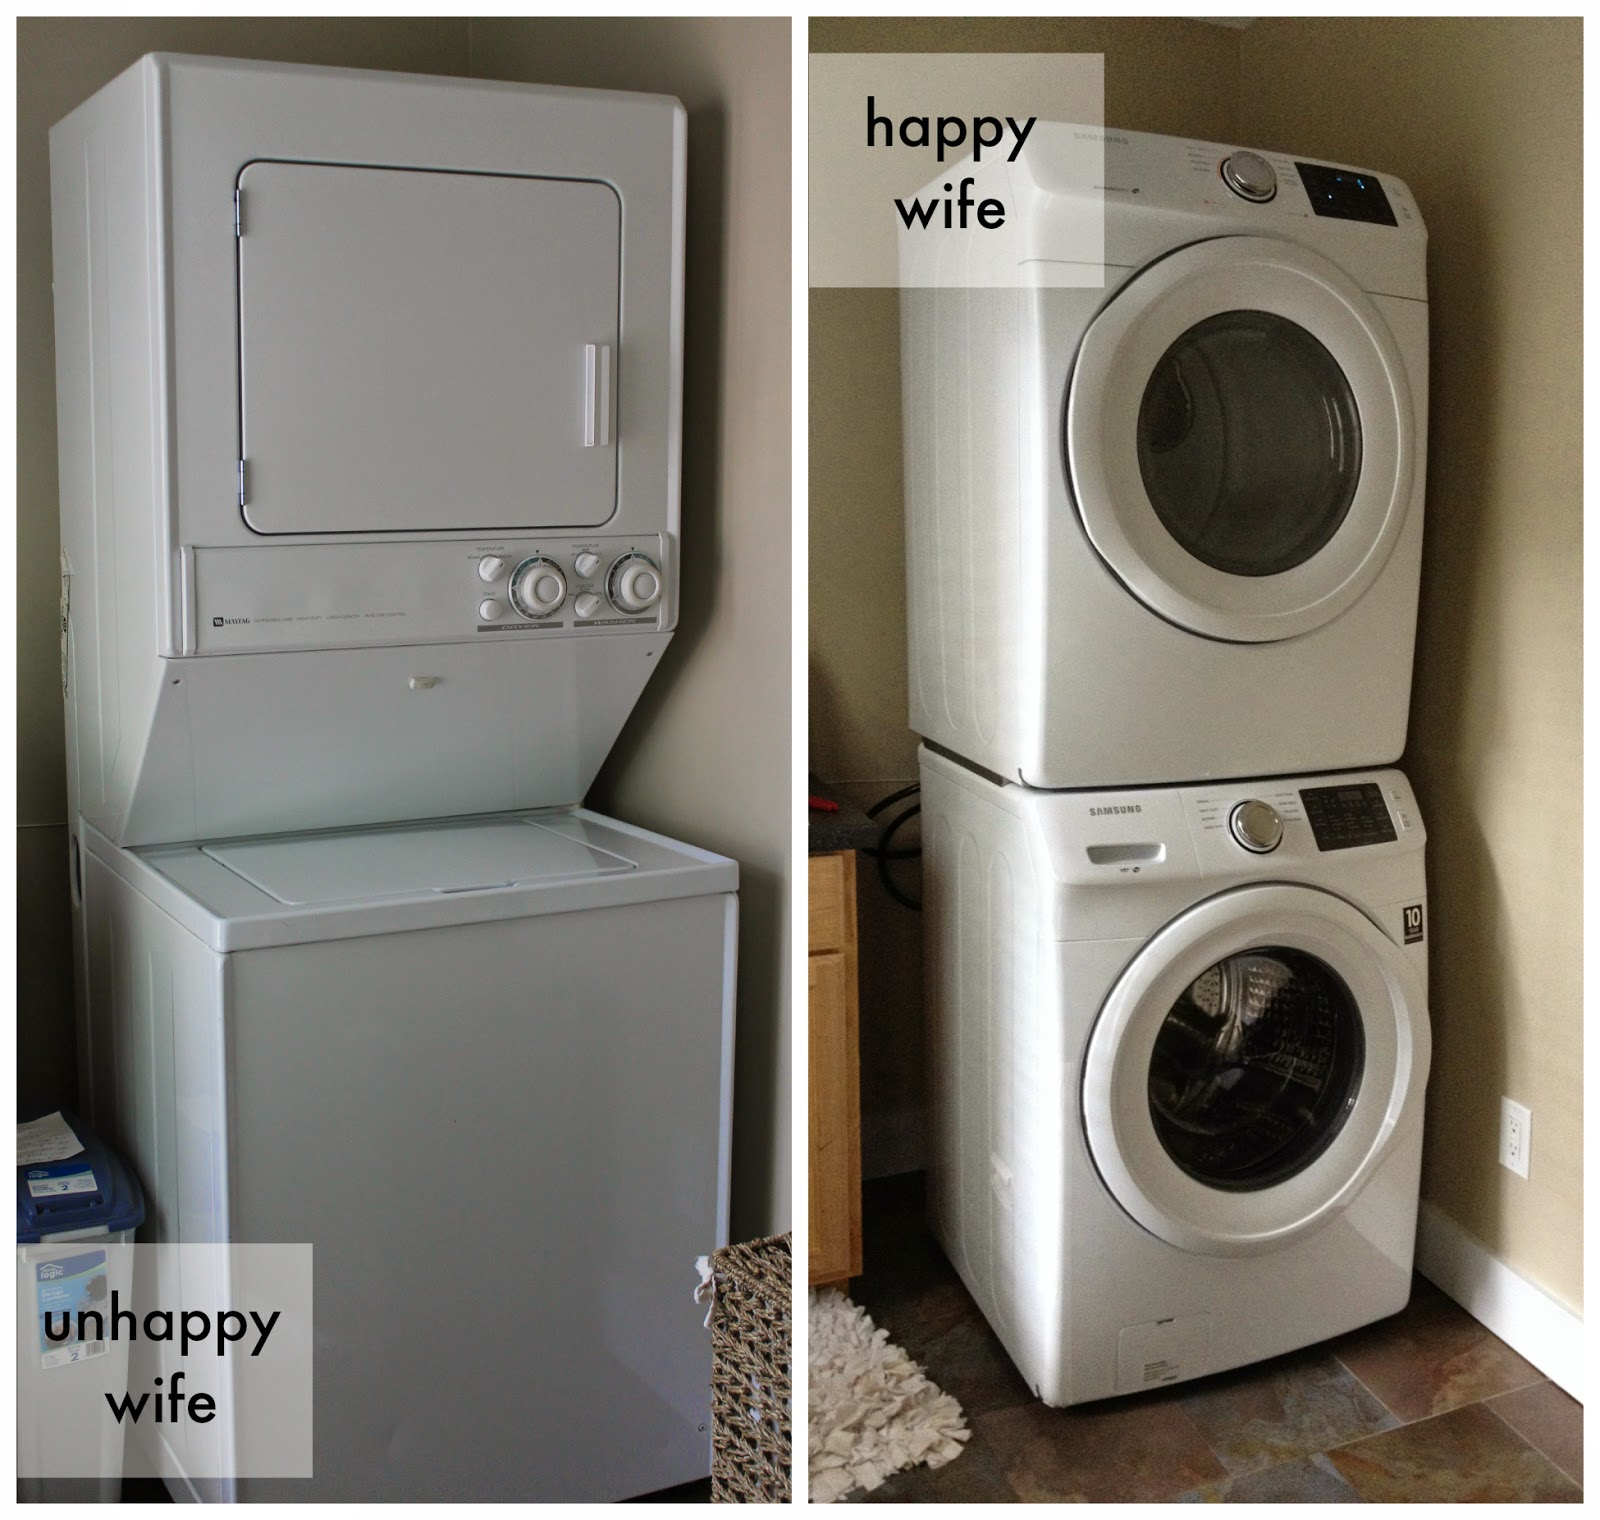 Check out best washing machines in India with customers review, rating. Top Rated fully automatic washing machine, front loading & top loading.